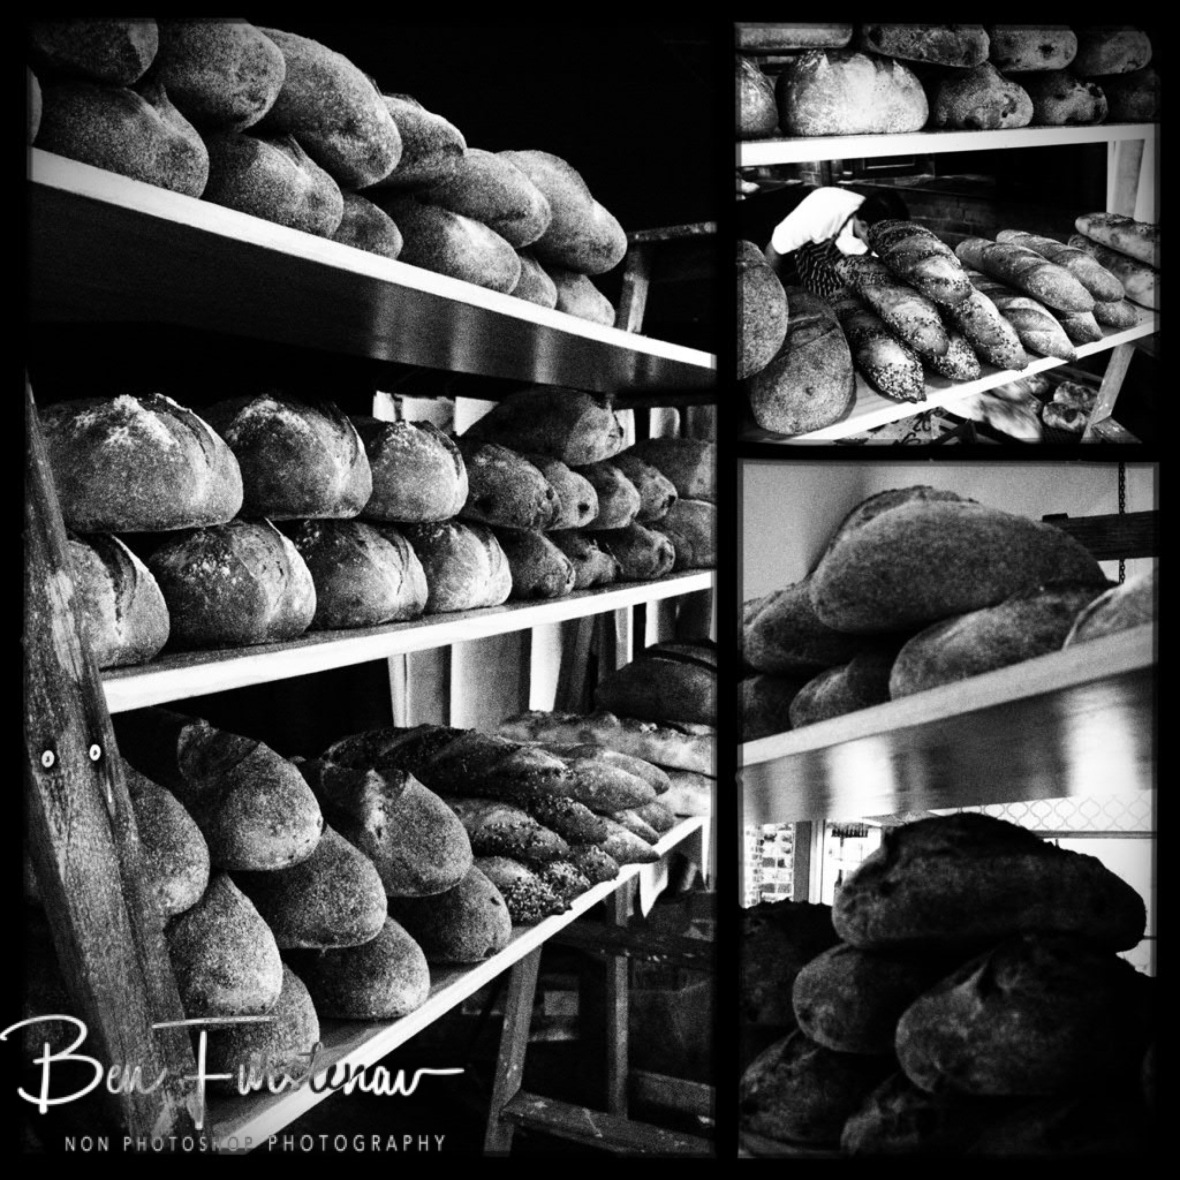 Sourdough bread selection on wooden planks, Newrybar, New South Wales, Australia